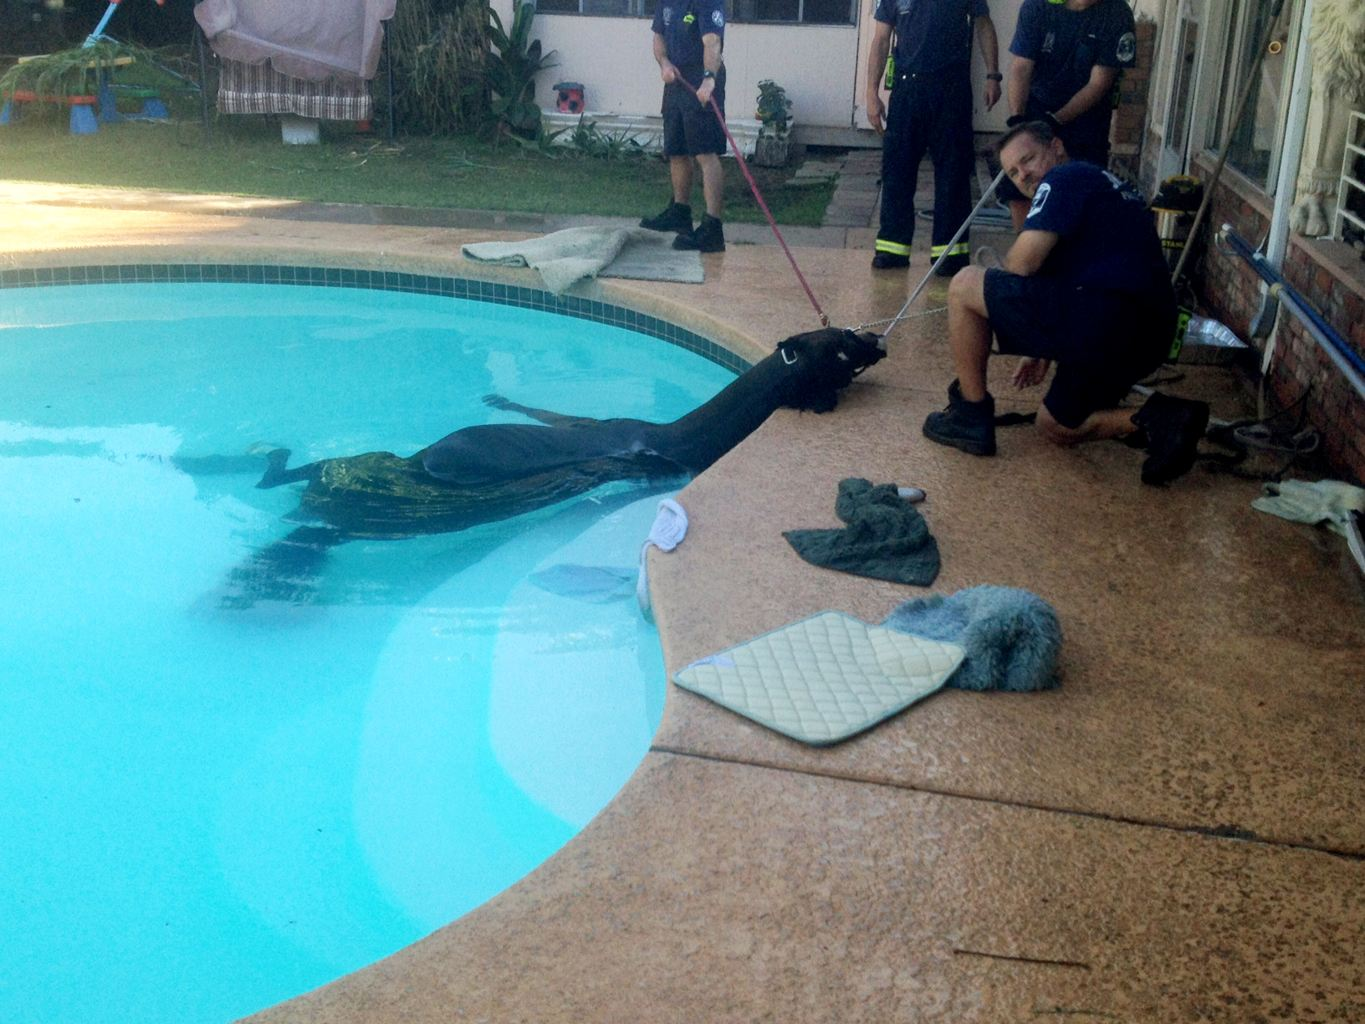 Horse rescued from pool at home - Emirates24|7